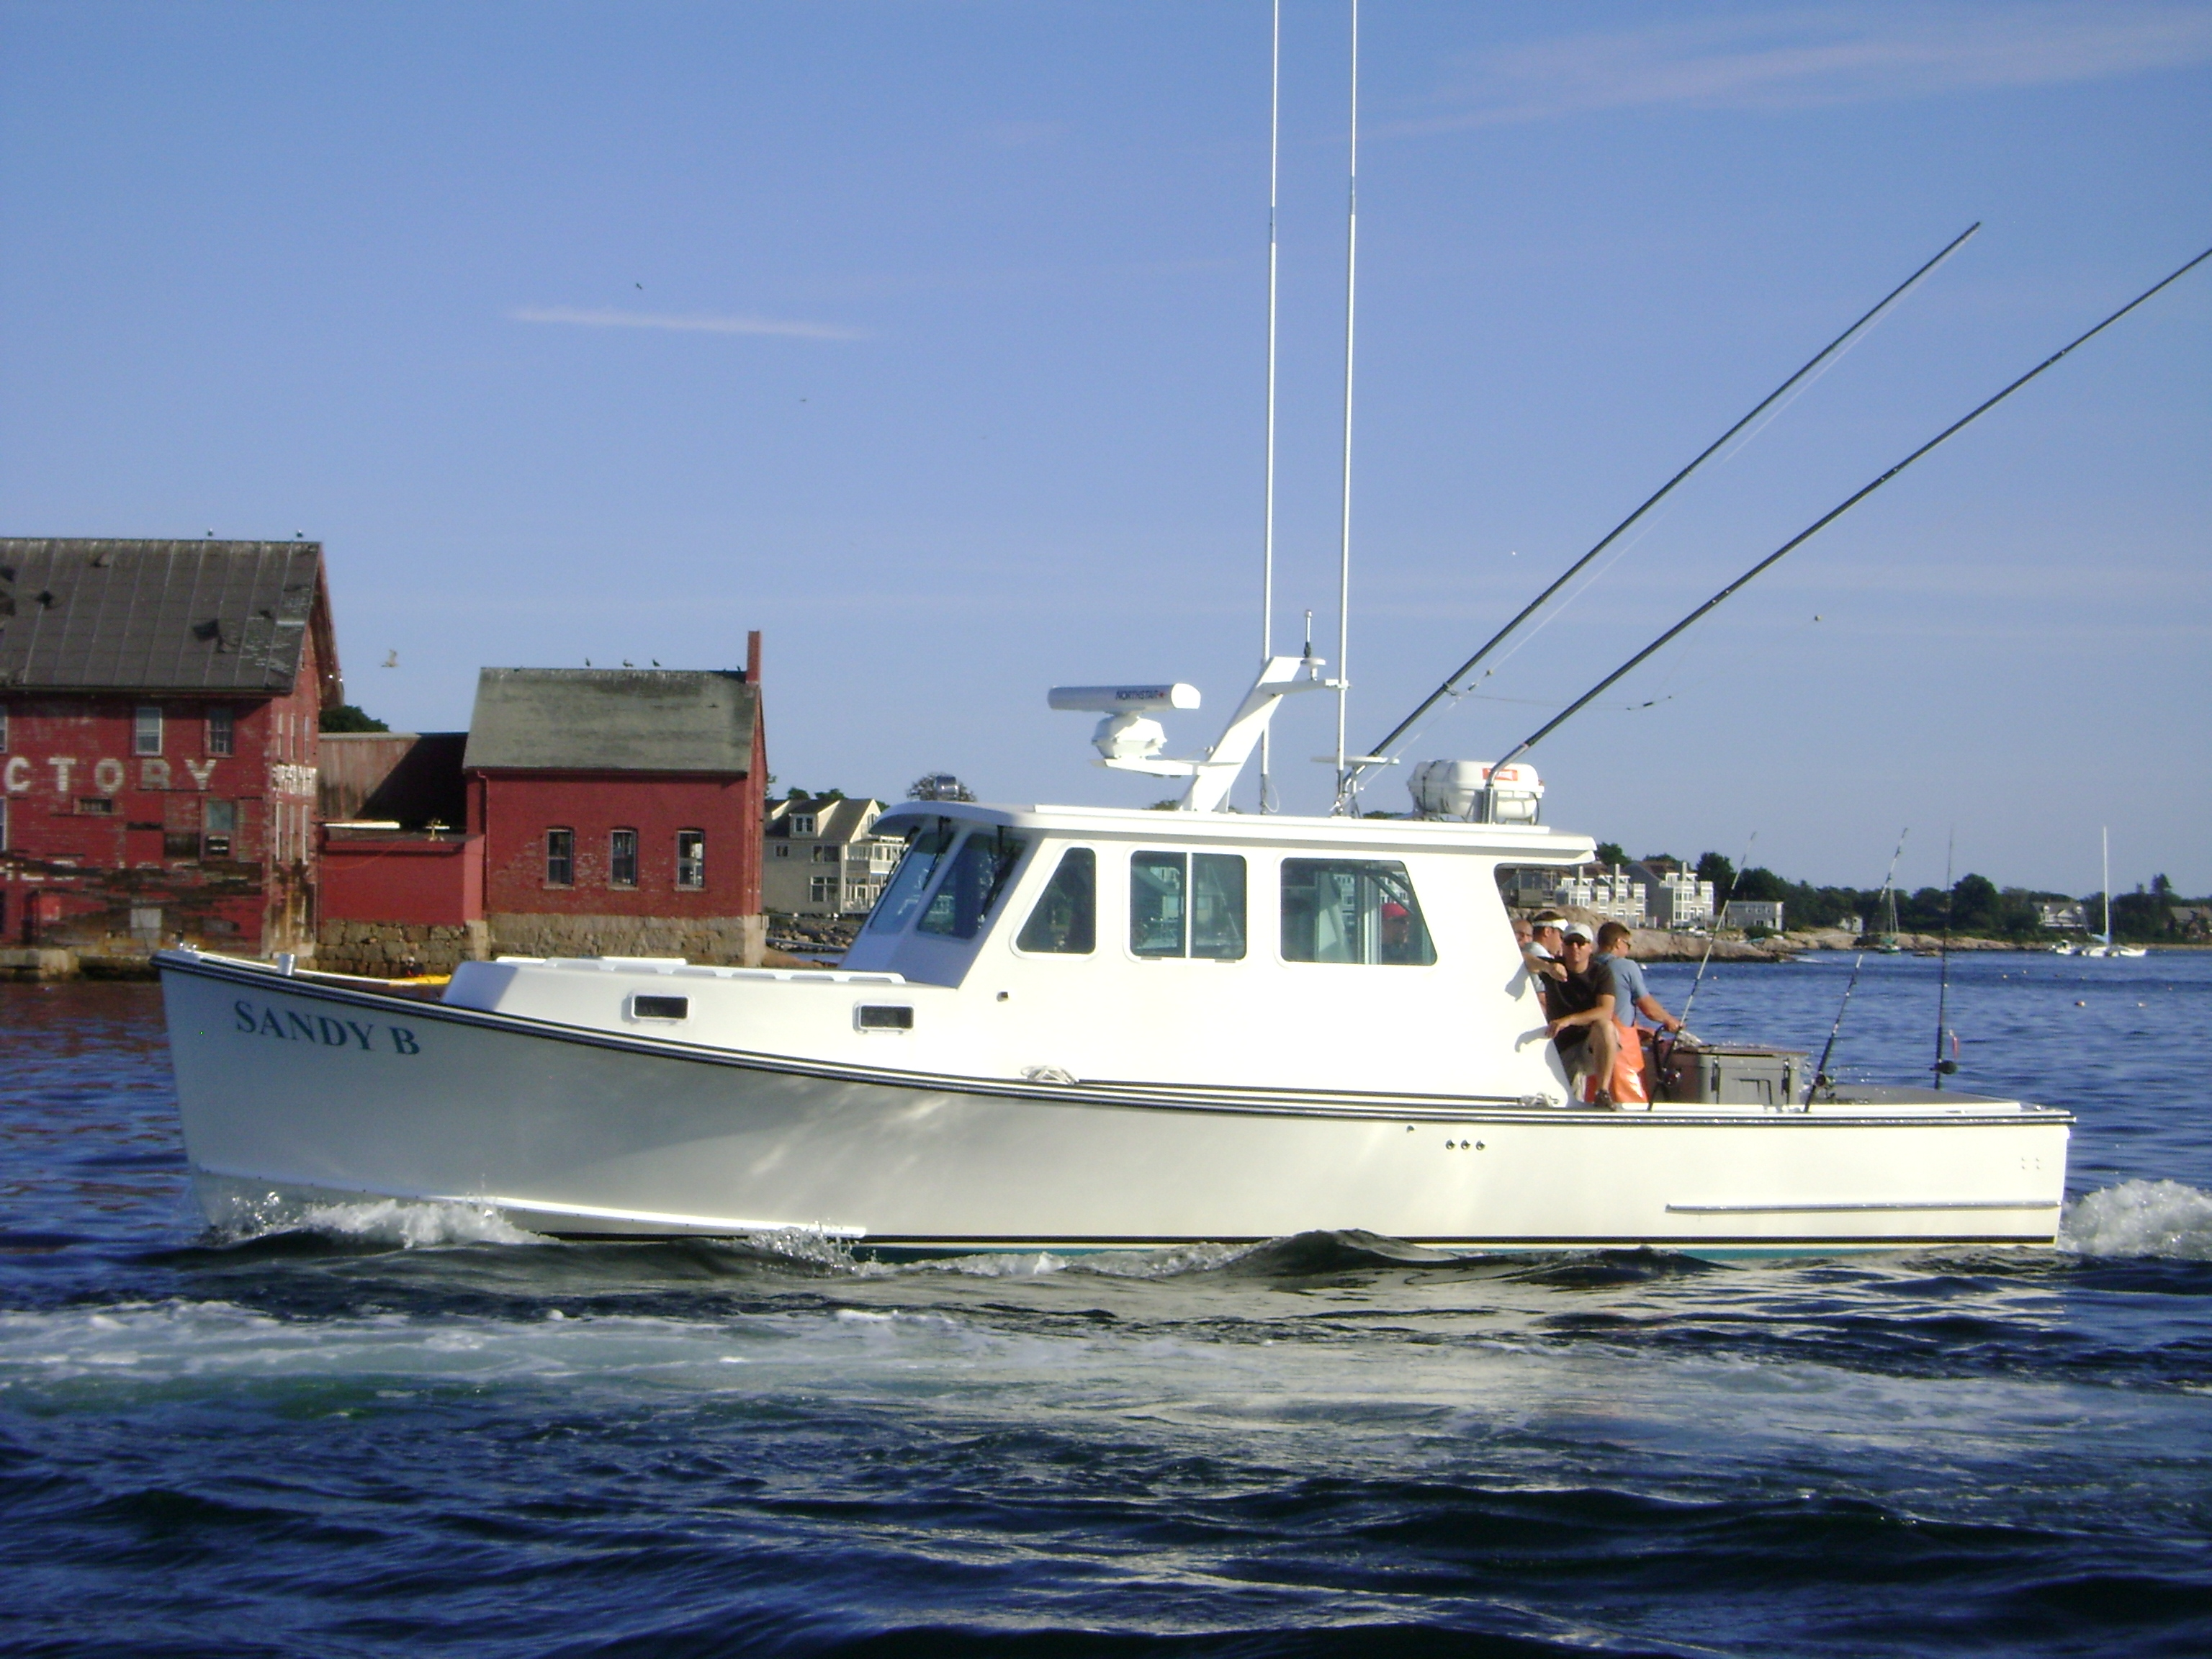 the gallery for tuna fishing boat for sale